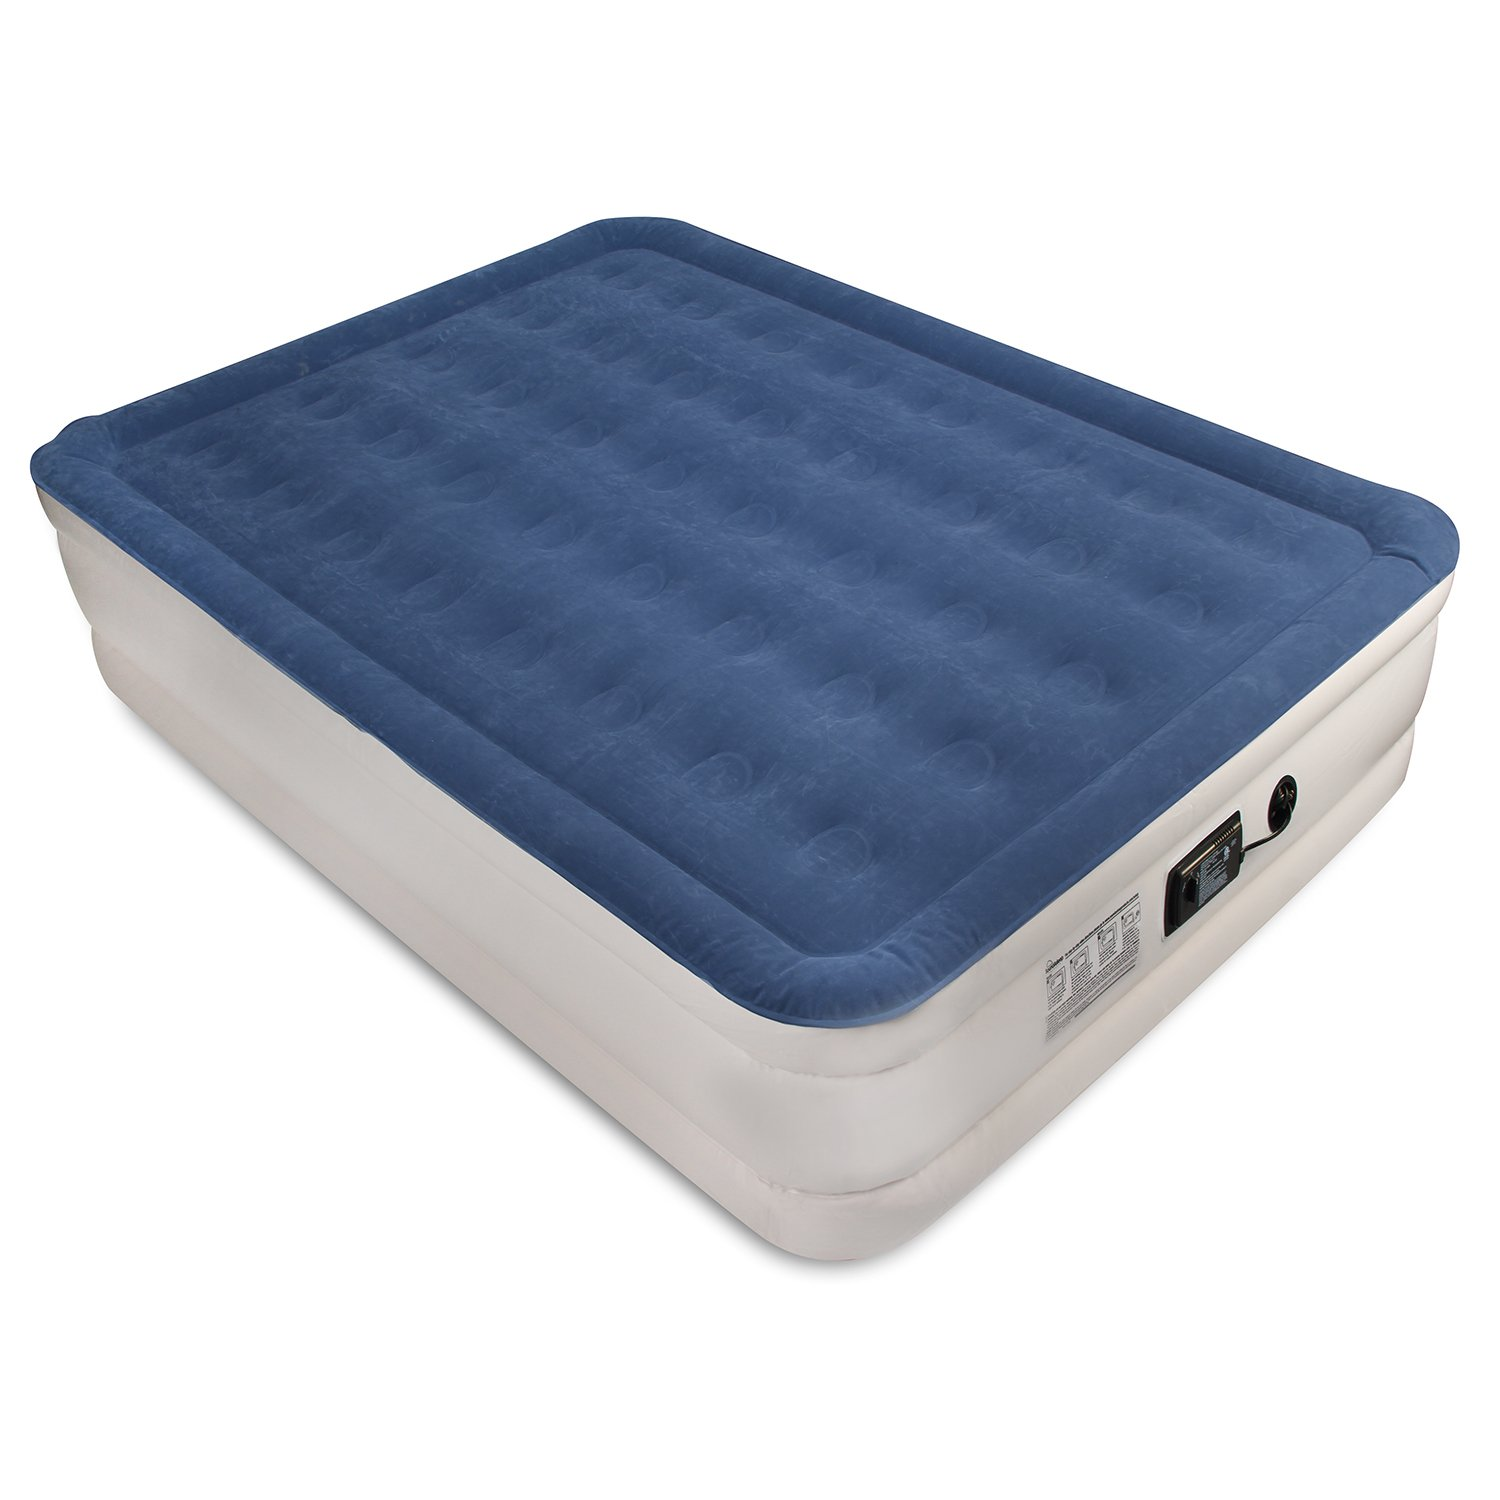 Shop for air mattress queen online at Target. Free shipping on purchases over $35 5% Off W/ REDcard · Same Day Store Pick-Up · Free Shipping $35+ · Same Day Store Pick-UpGoods: Wine Rack, Desks, Dressers, Drawers, Entertainment Units, Futons, Kids Furniture.